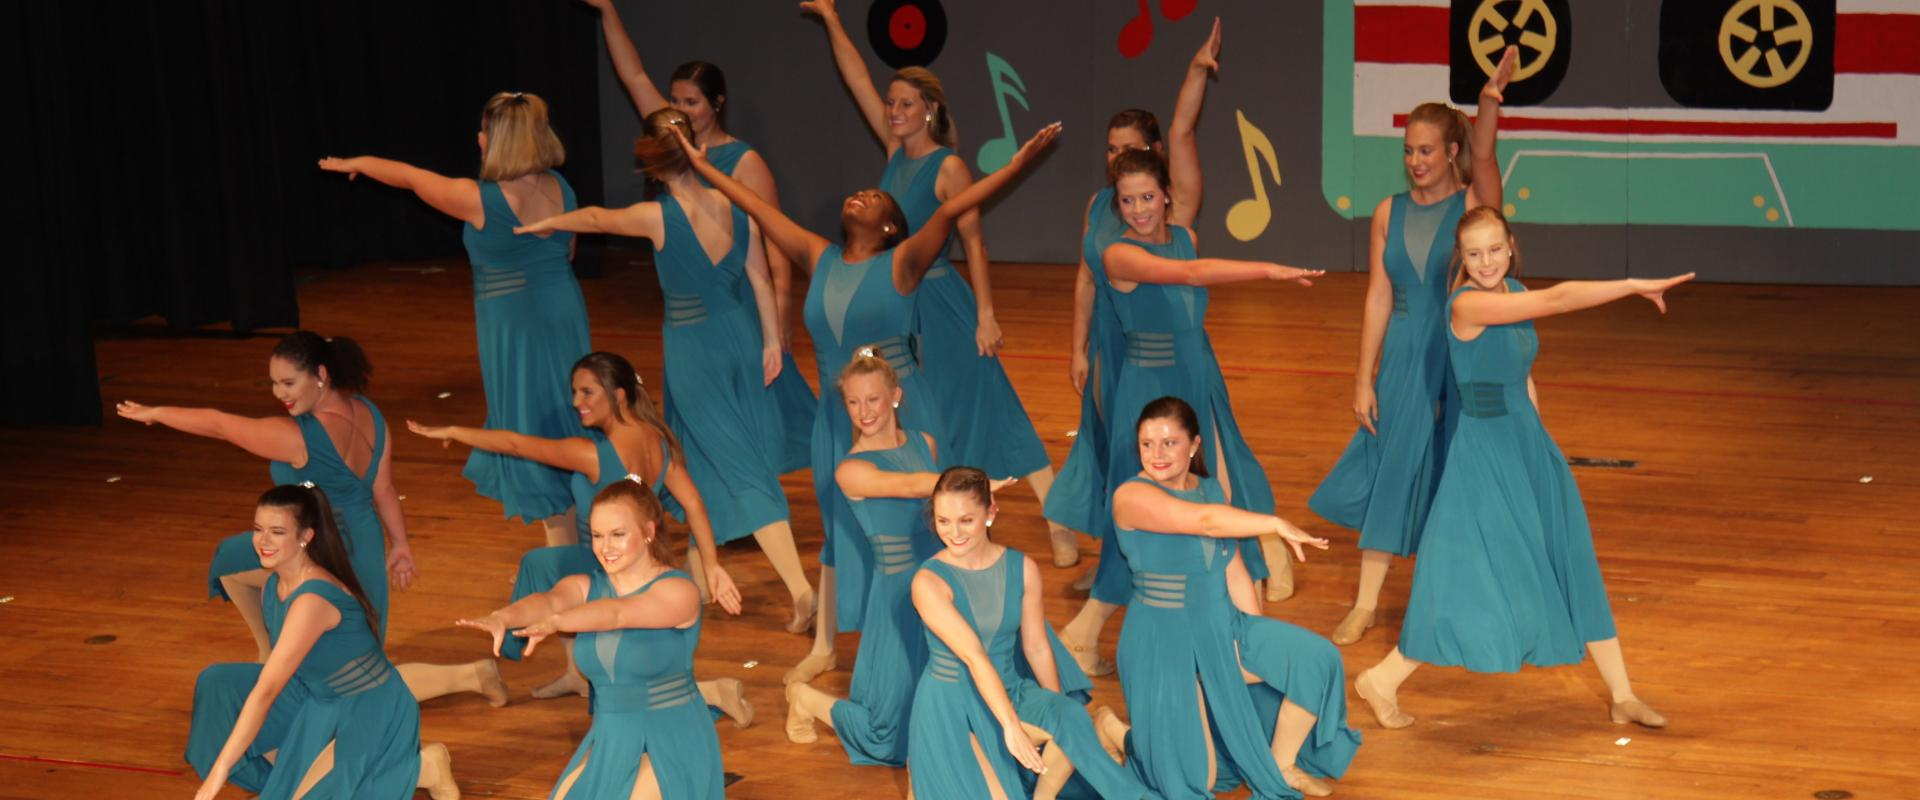 Group Lyrical Dance Recital in Orangeburg